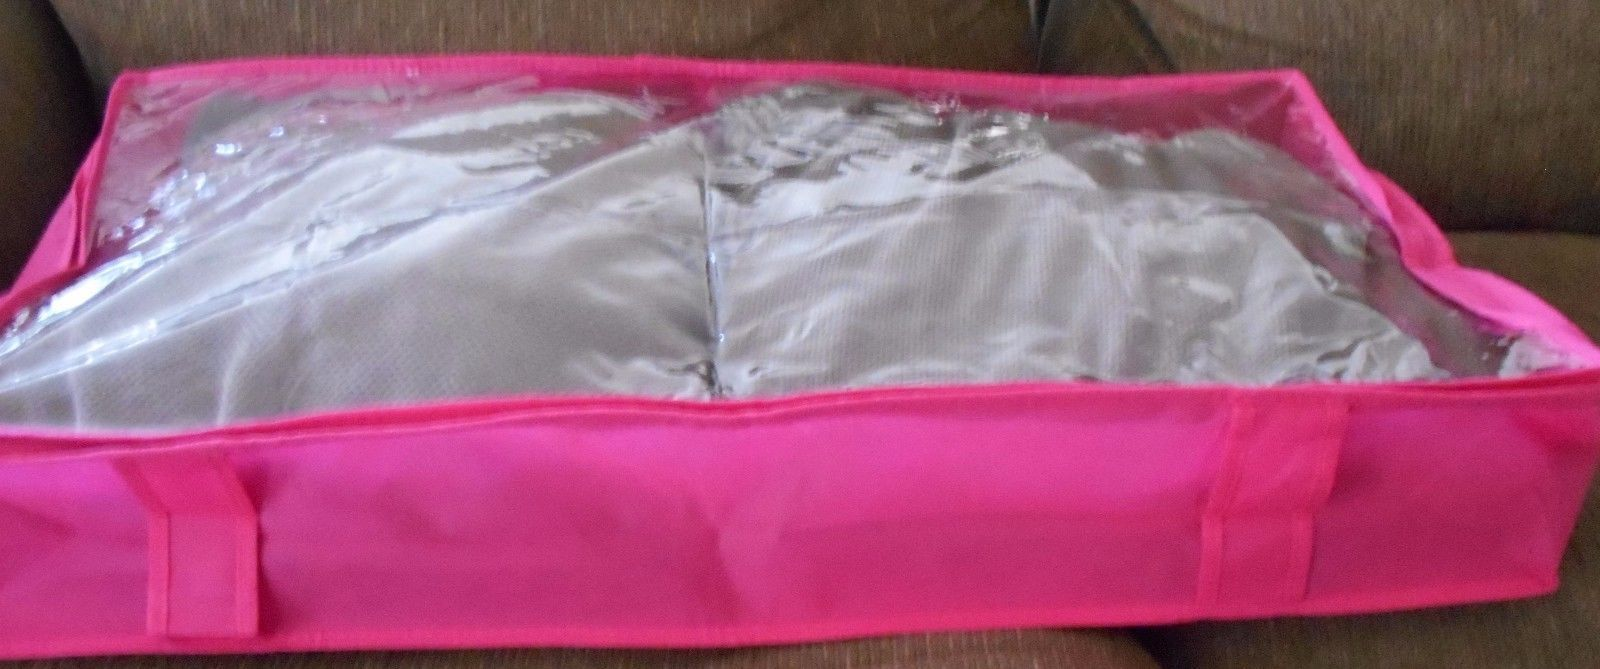 LARGE FOLDABLE STORAGE TRAVEL ORGANIZER PINK WITH CLEAR WINDOW 31X17X6""